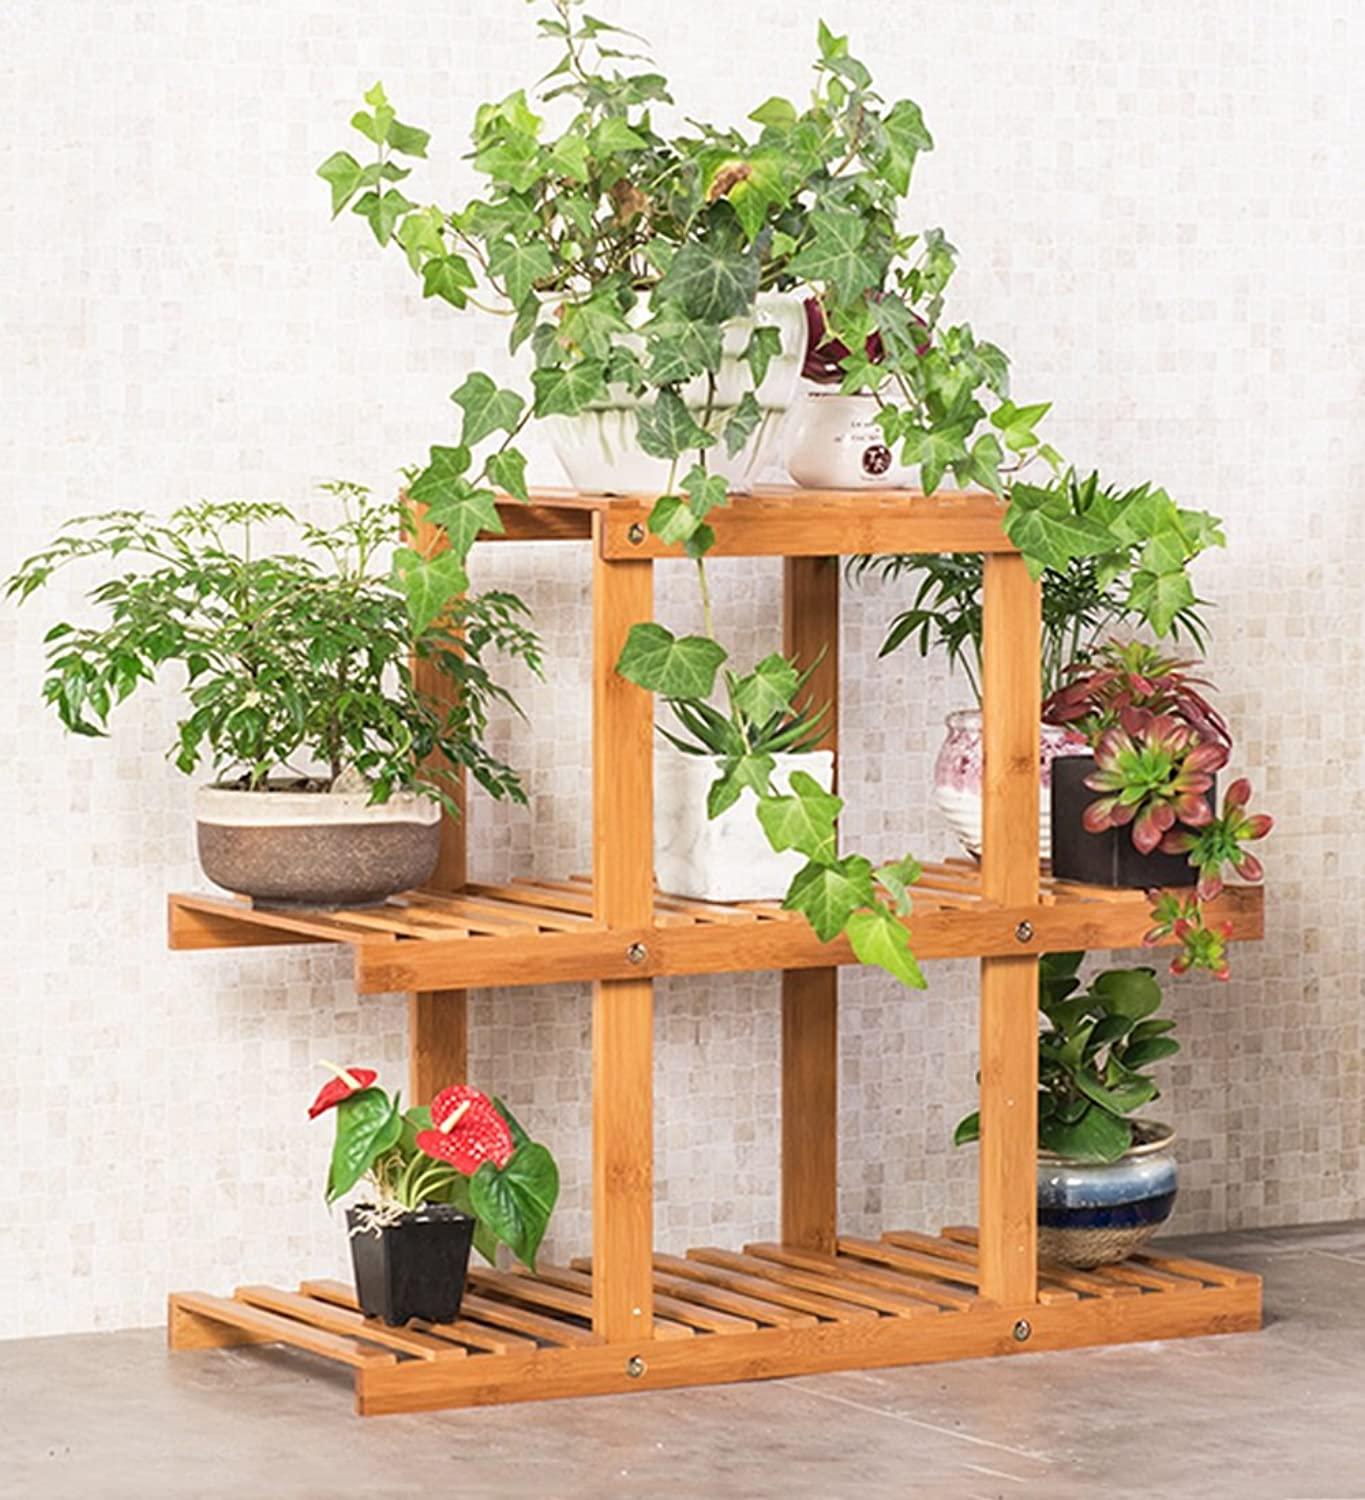 Qing MEI Multi-Layer Solid Wood Flower Shelf Indoor Living Room Floor Wooden Flower Stand Ground Green Lollo Meat Balcony Flower Pot Rack A++ (color   D)